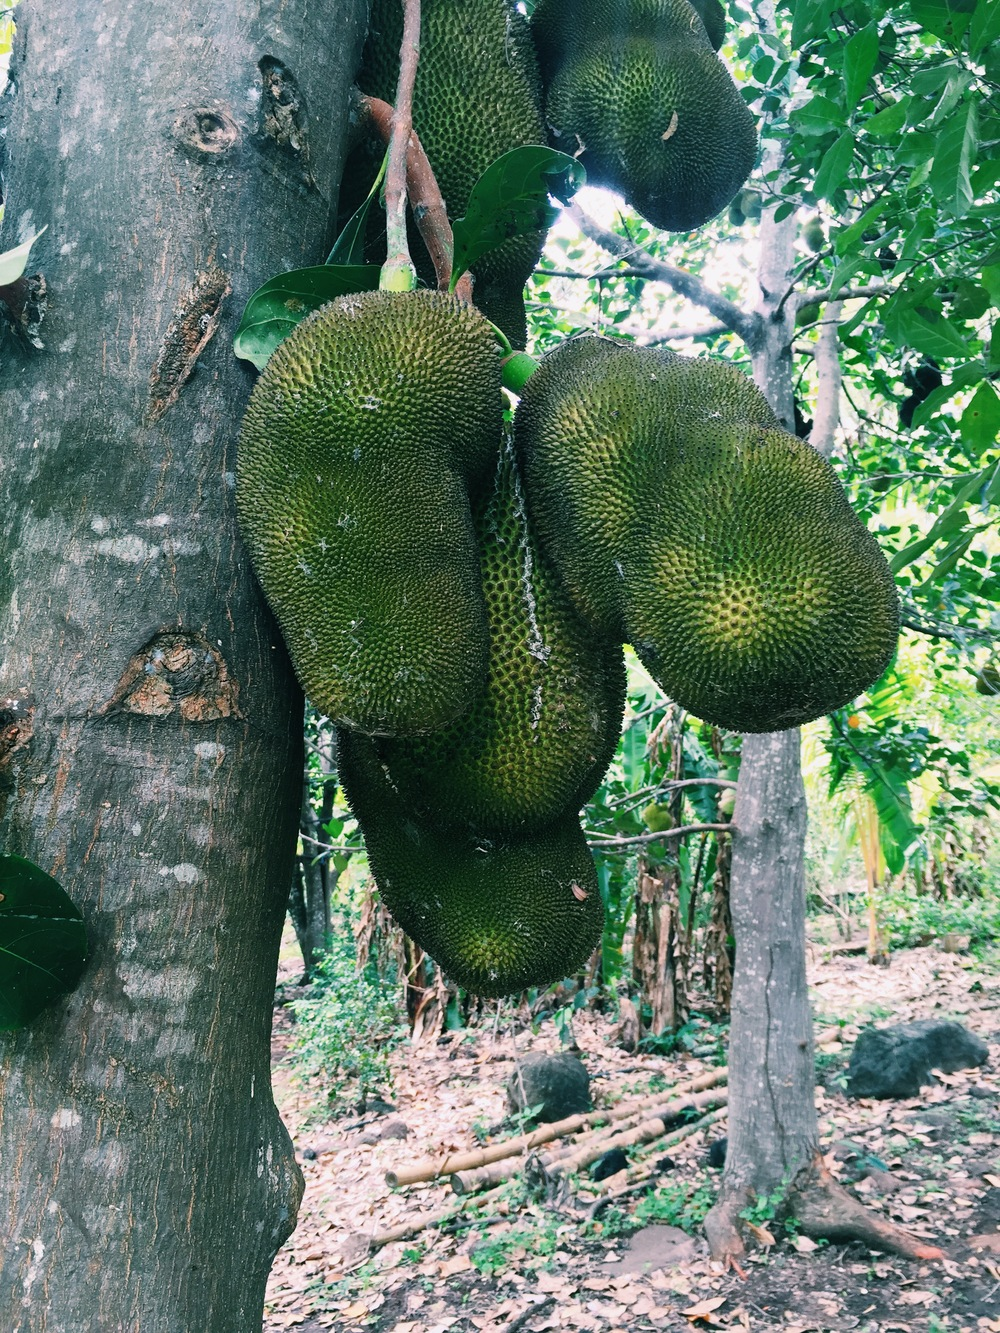 Jackfruit forest. AKA heaven!